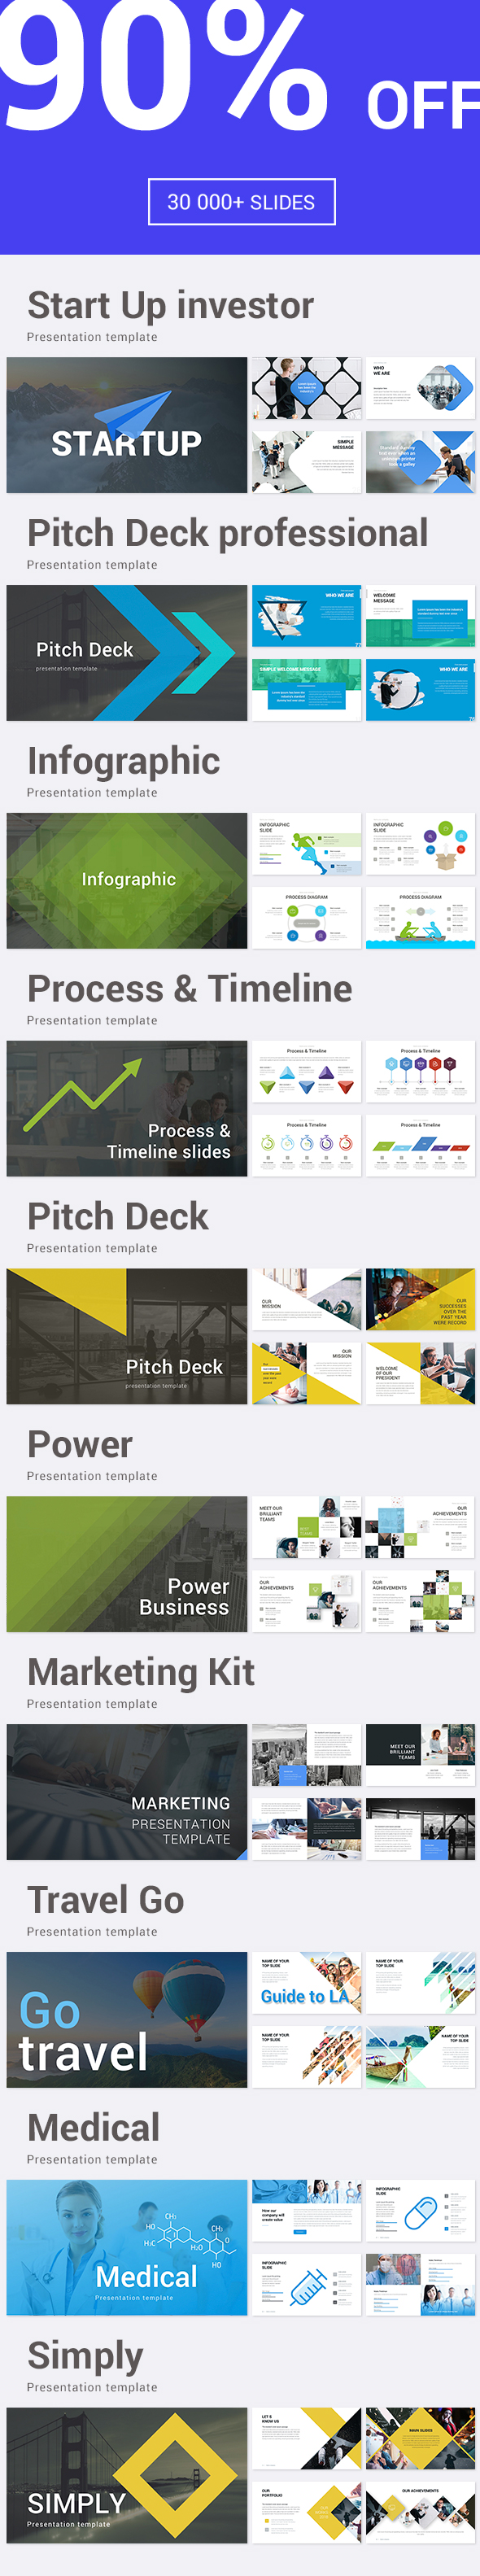 10 in 1 Bundle Powerpoint Template - Pitch Deck PowerPoint Templates